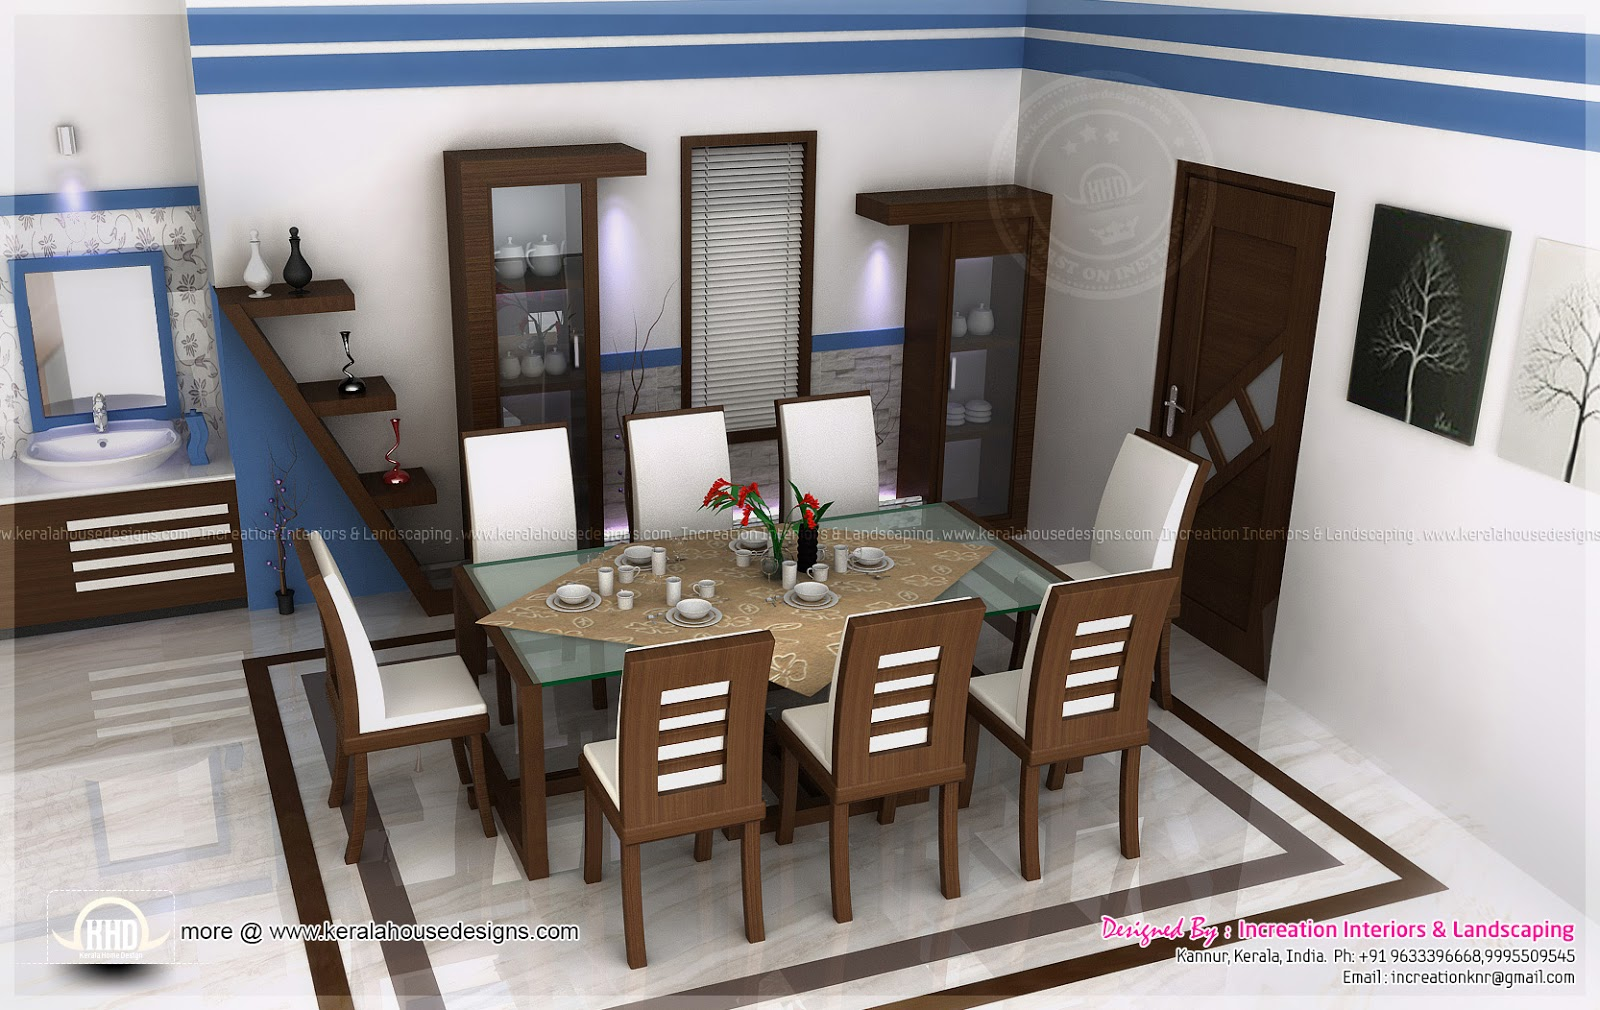 House interior ideas in 3d rendering kerala home design and floor plans Home interior design ideas in chennai